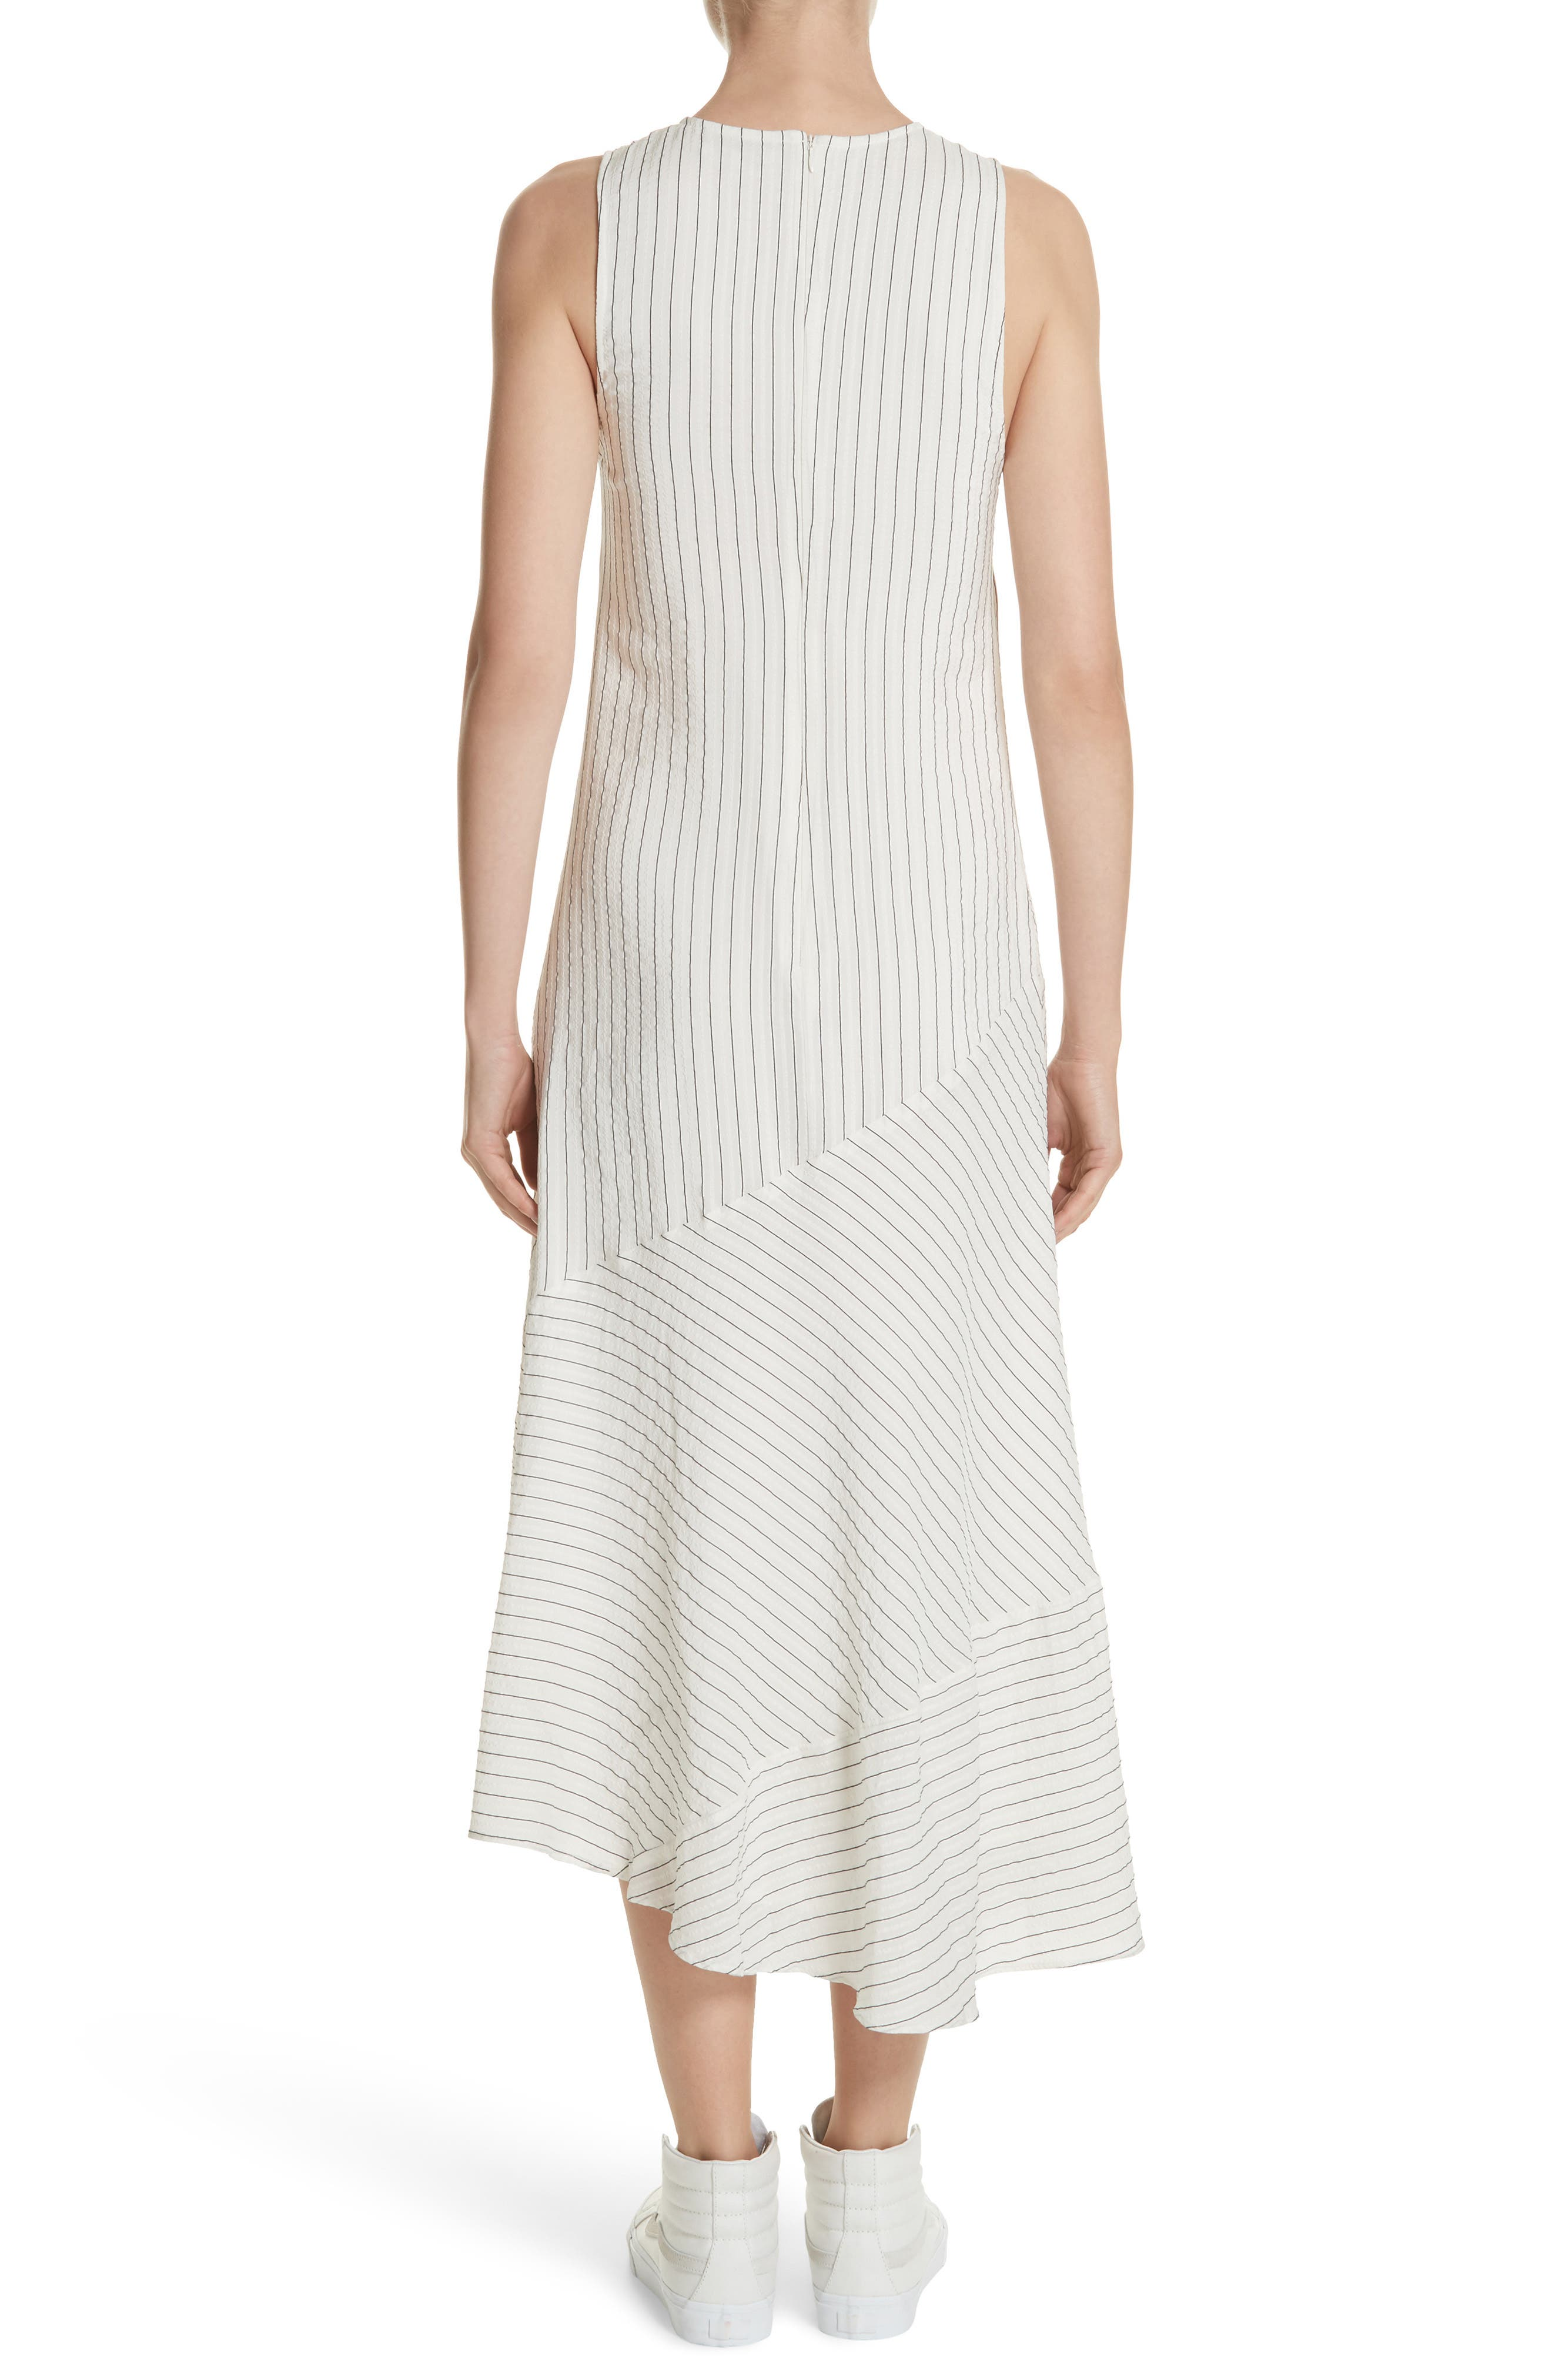 Wilkie Seersucker Striped Sheath Dress,                             Alternate thumbnail 2, color,                             900